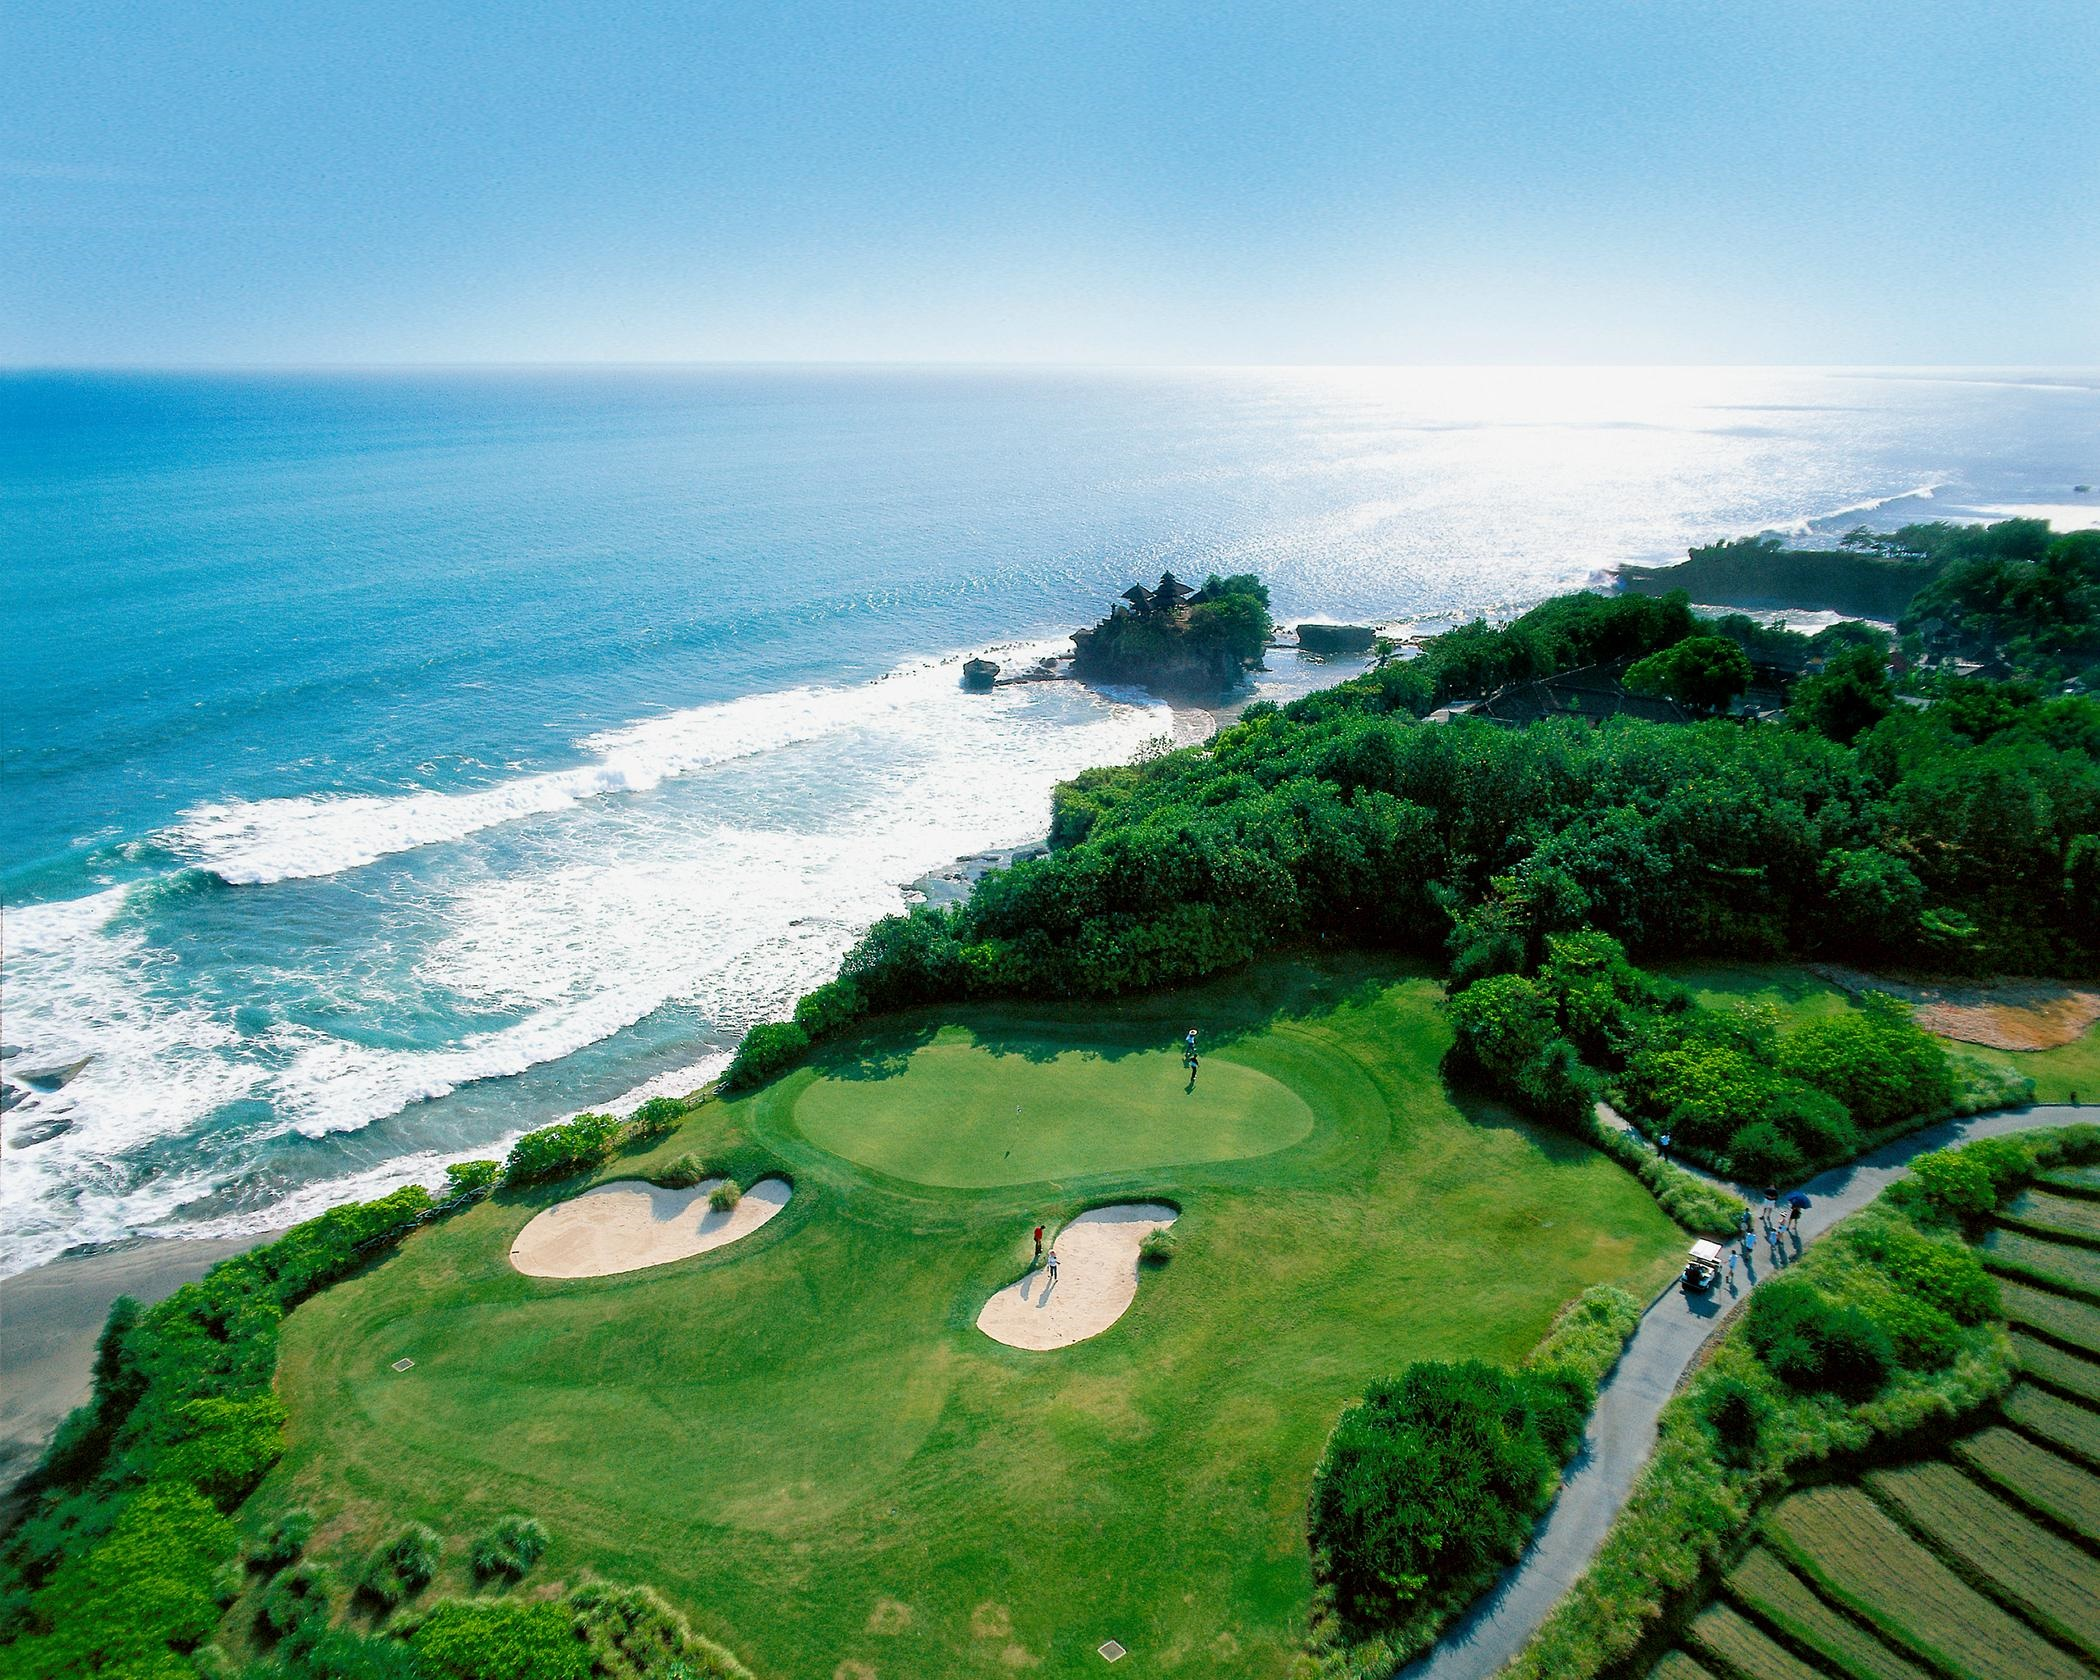 - The scores at the top of the leader board were very close, making the last round at Nirwana an exciting one.A farewell dinner on the beach at Jimbaran Bay, signalled the end of our trip.We left Bali with happy memories and new friends.